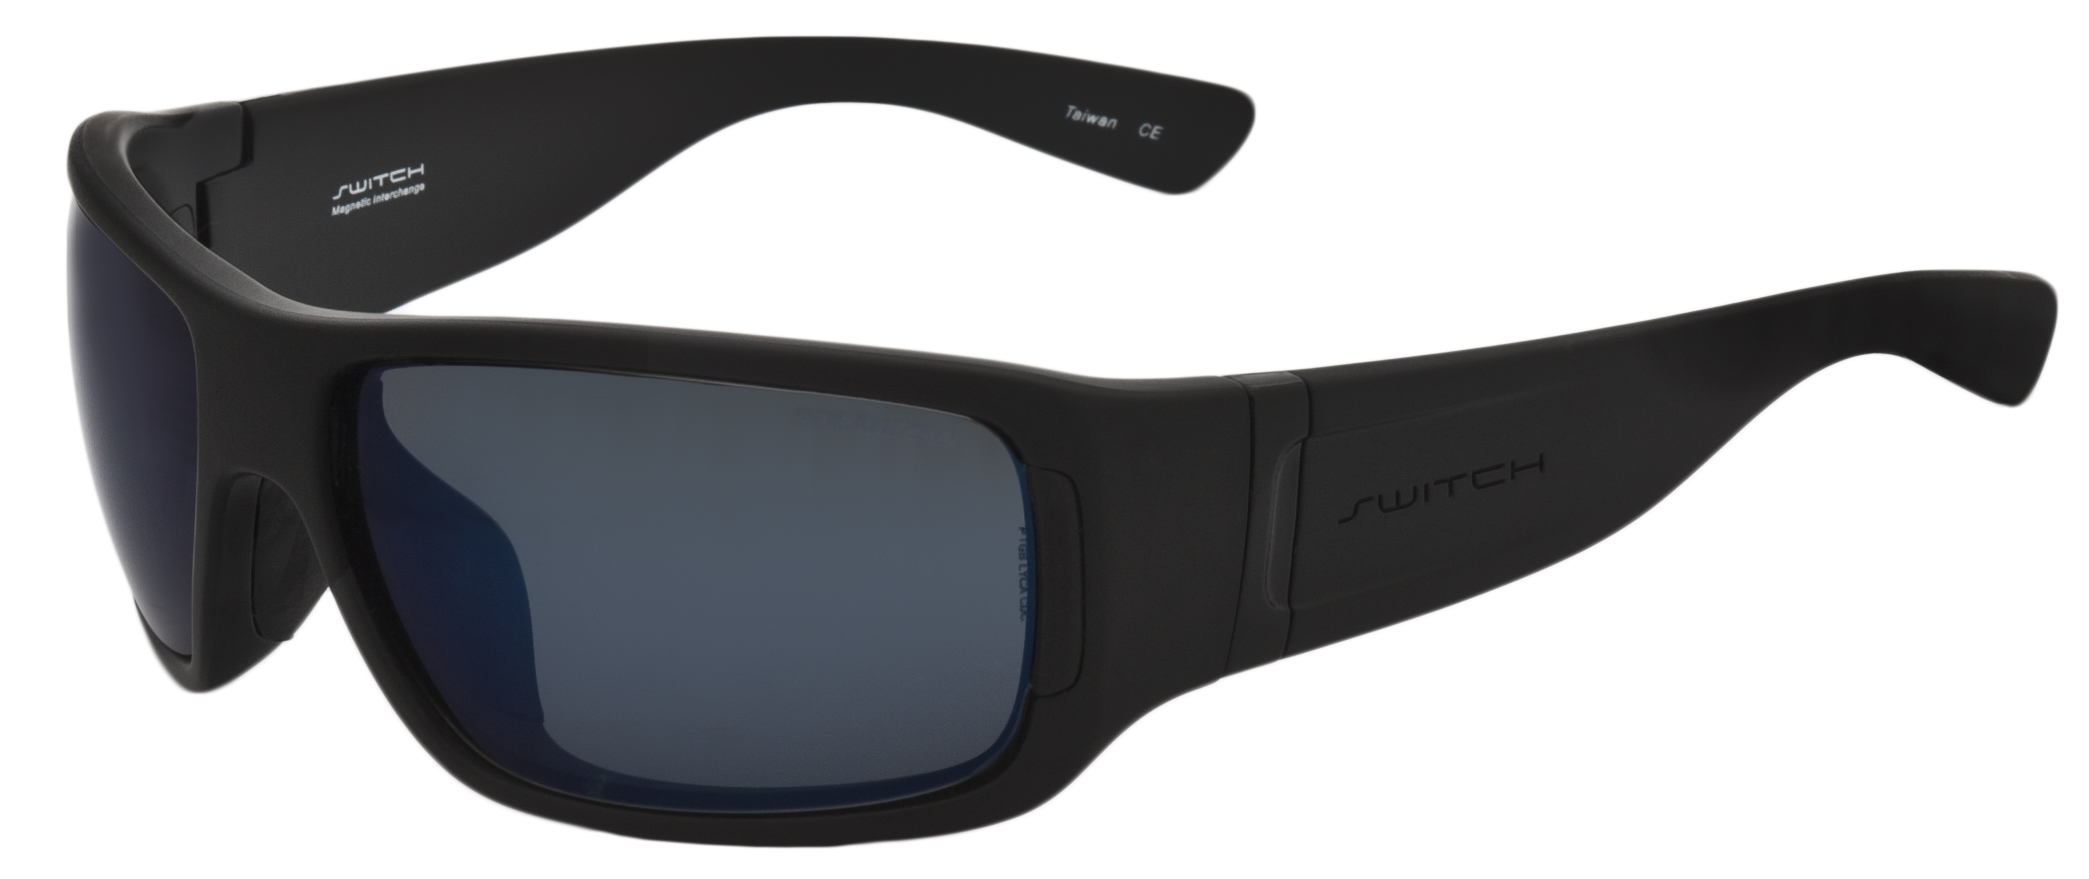 Lycan Sunglasses